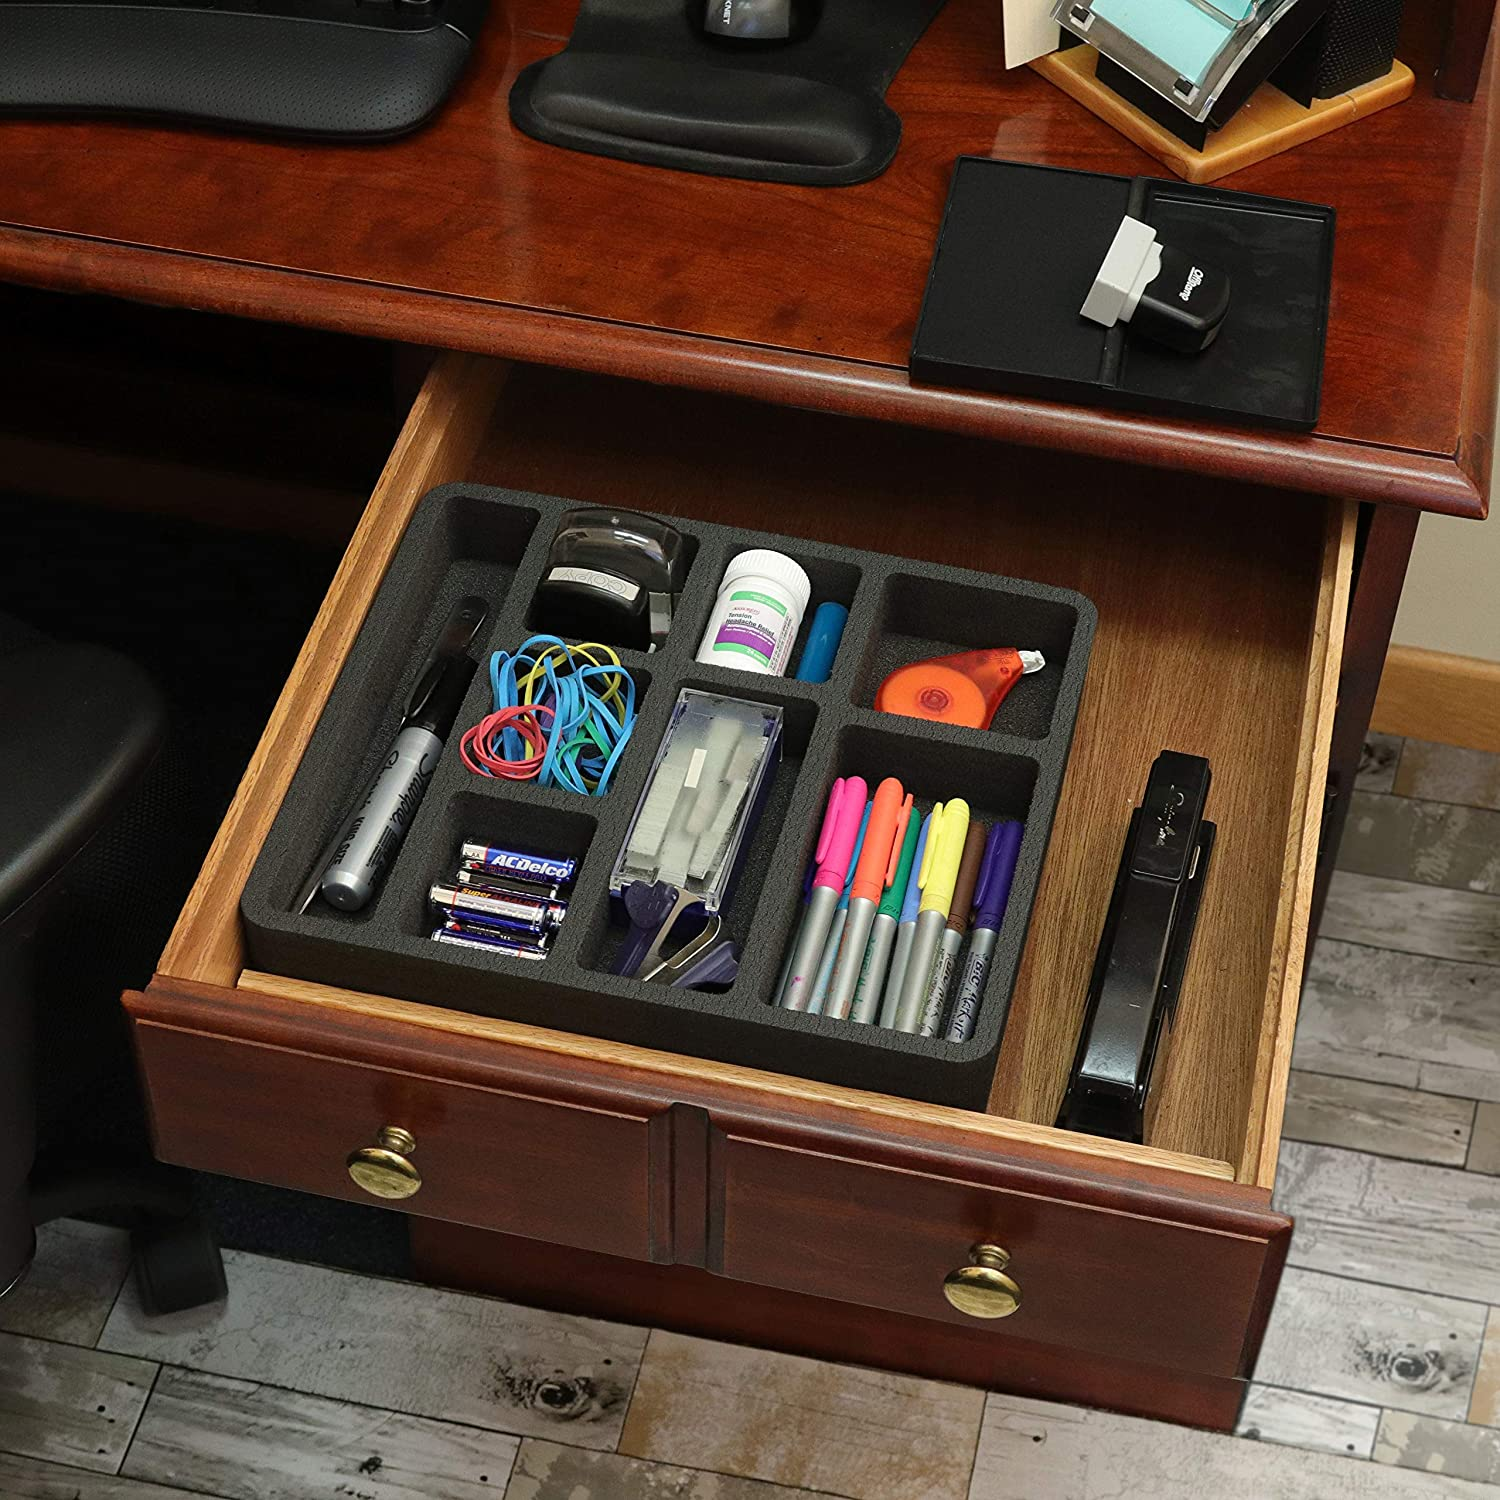 Polar Whale Desk Drawer Organizer Tray Non-Slip Waterproof Insert for Office Home Shop Garage 12 X 10.5 X 2 Inches Black 8 Compartments Extra Deep